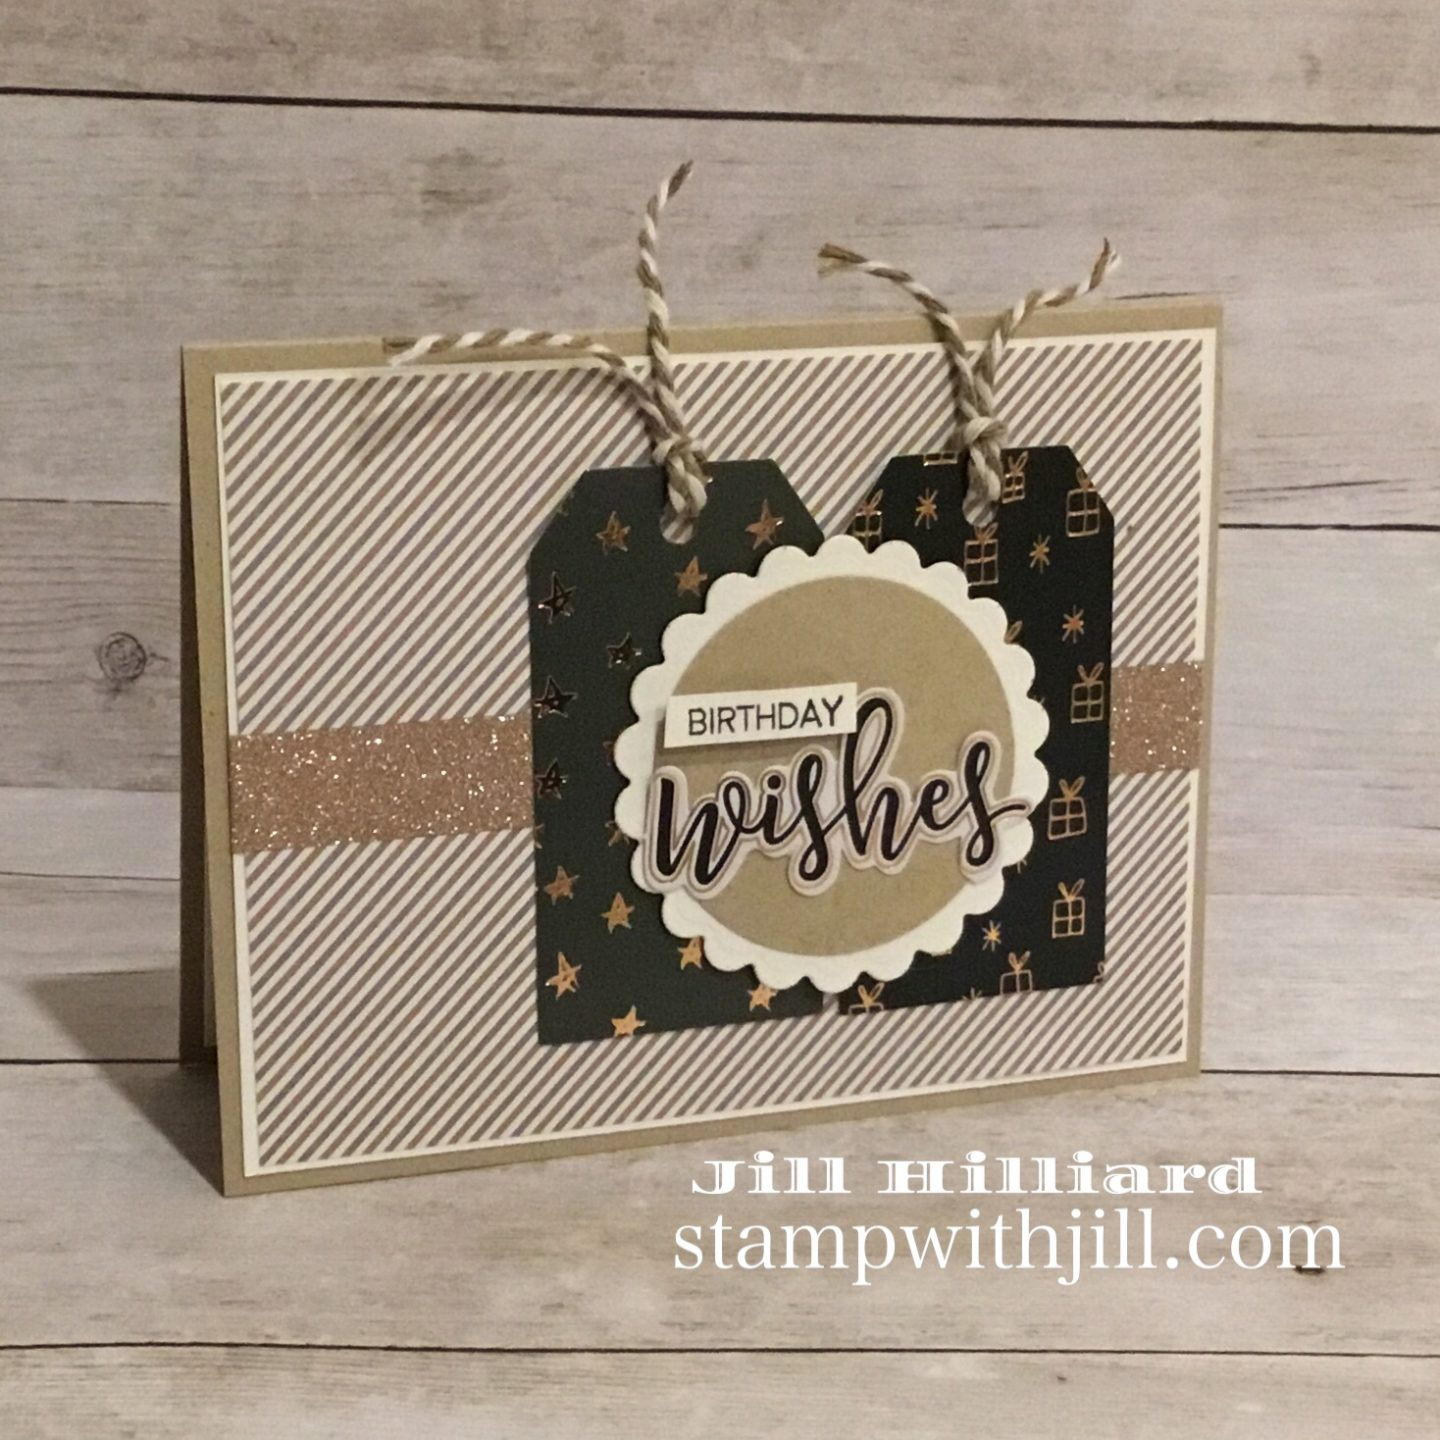 Winter Wishes Spellbinders Card Kit, Stamp WIth Jill